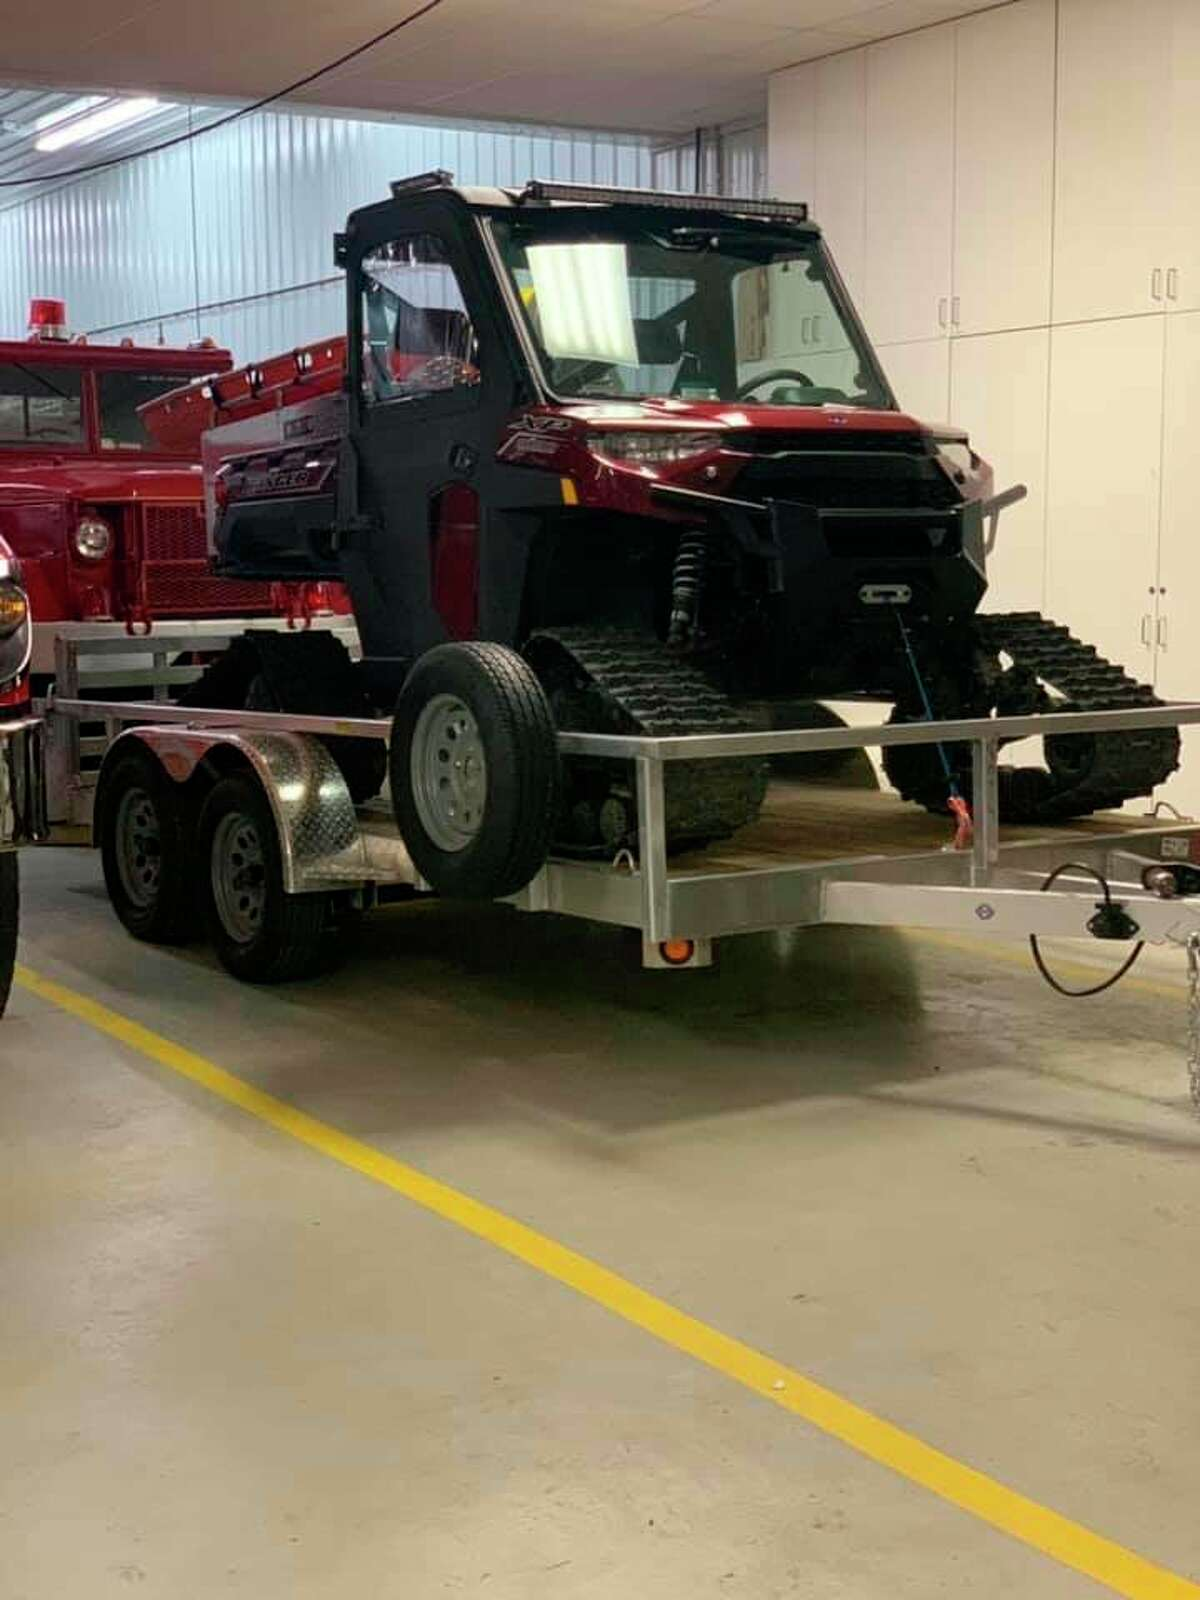 The Billings Township Fire Departmentacquired a new firefighting vehicle, a side by side. (Photo provided)